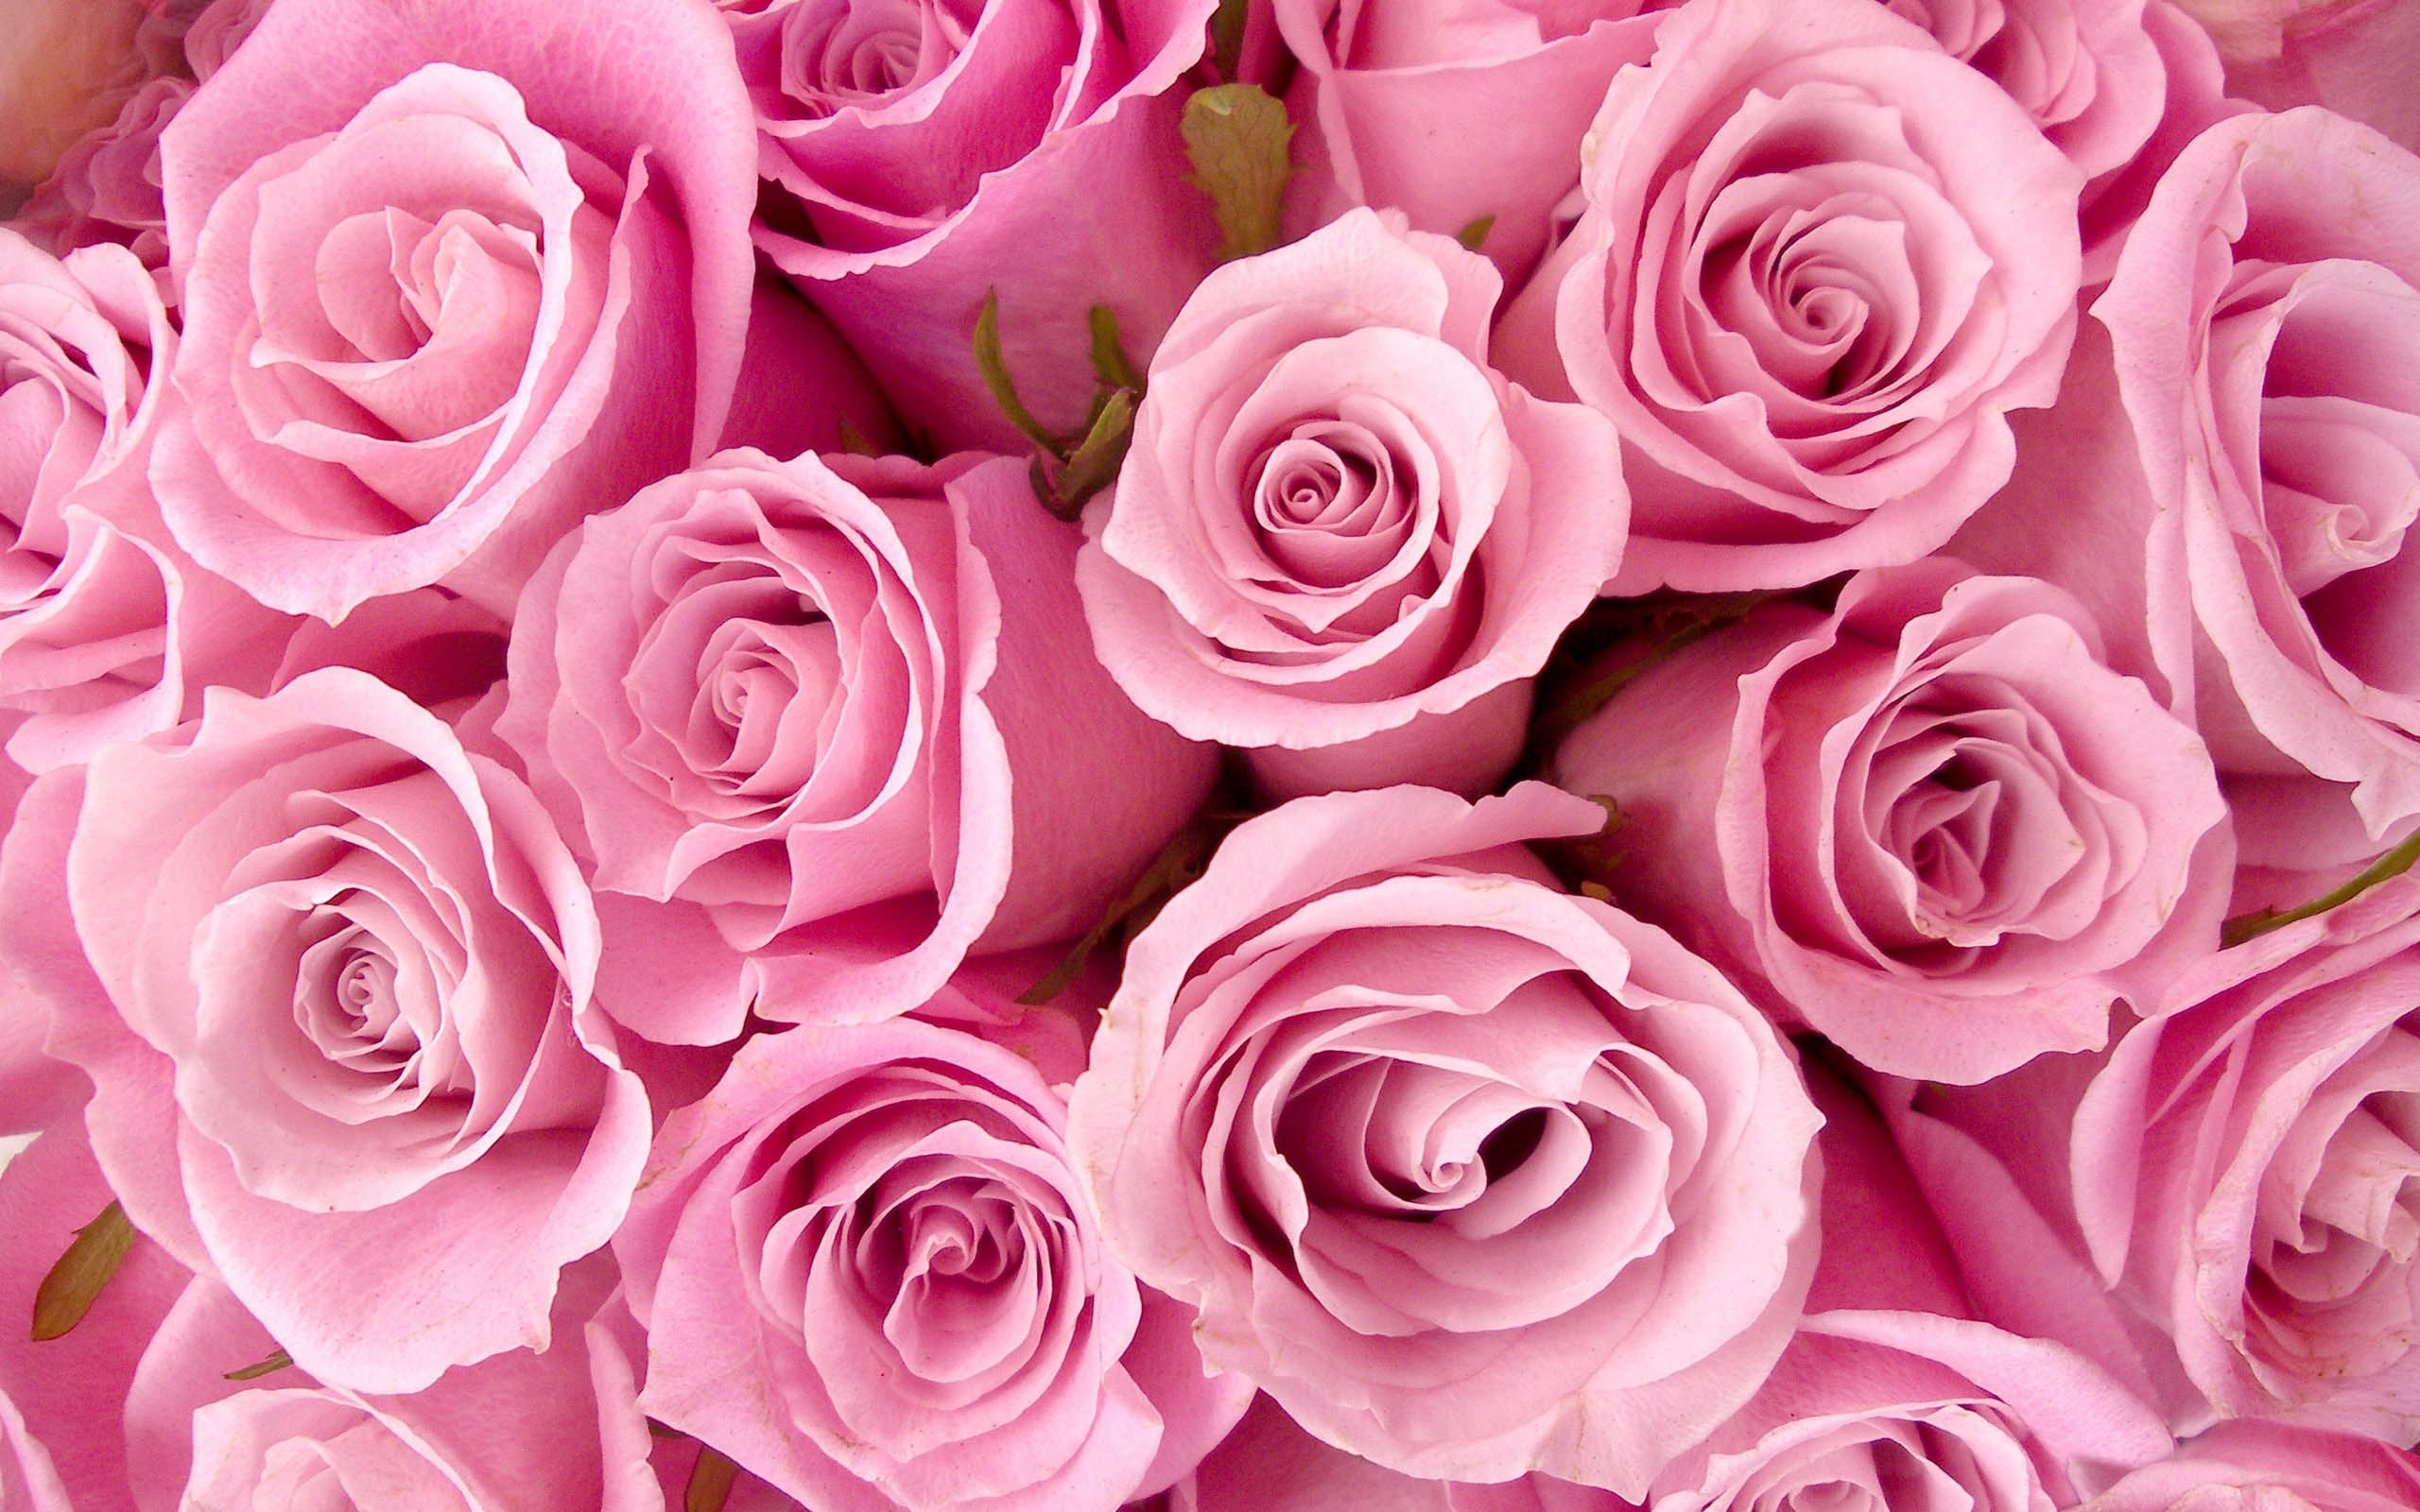 PinkRosesWallpaper - Flowers Wallpaper (33624067) - Fanpop